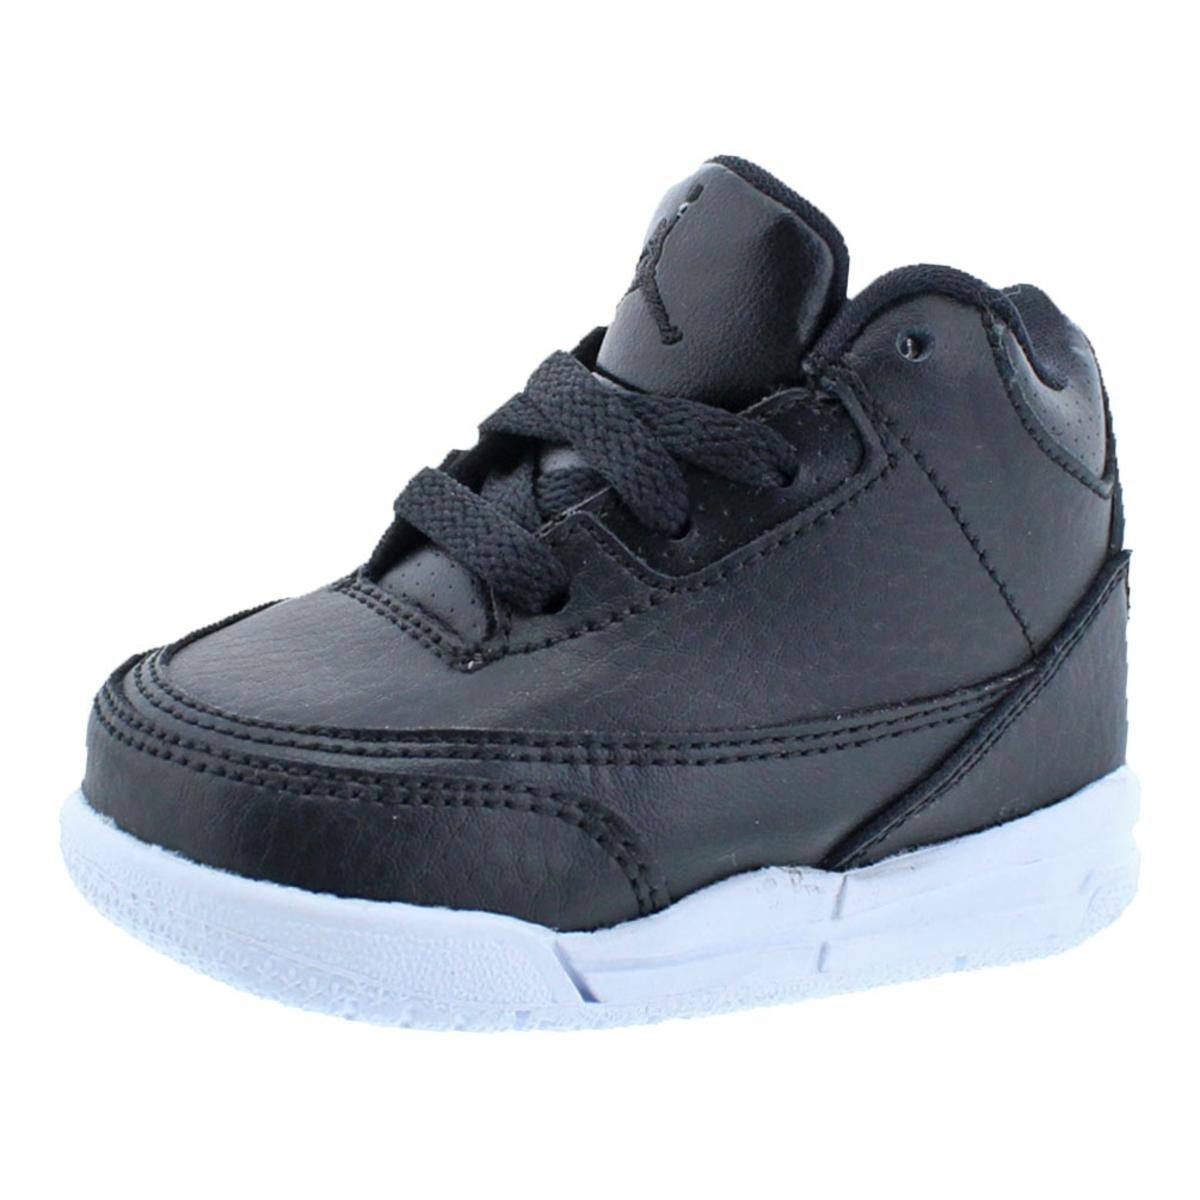 43bcaa6638ca Shop Jordan Boys 3 Retro BT Fashion Sneakers Toddler High-Top - Free  Shipping On Orders Over  45 - Overstock - 22025006